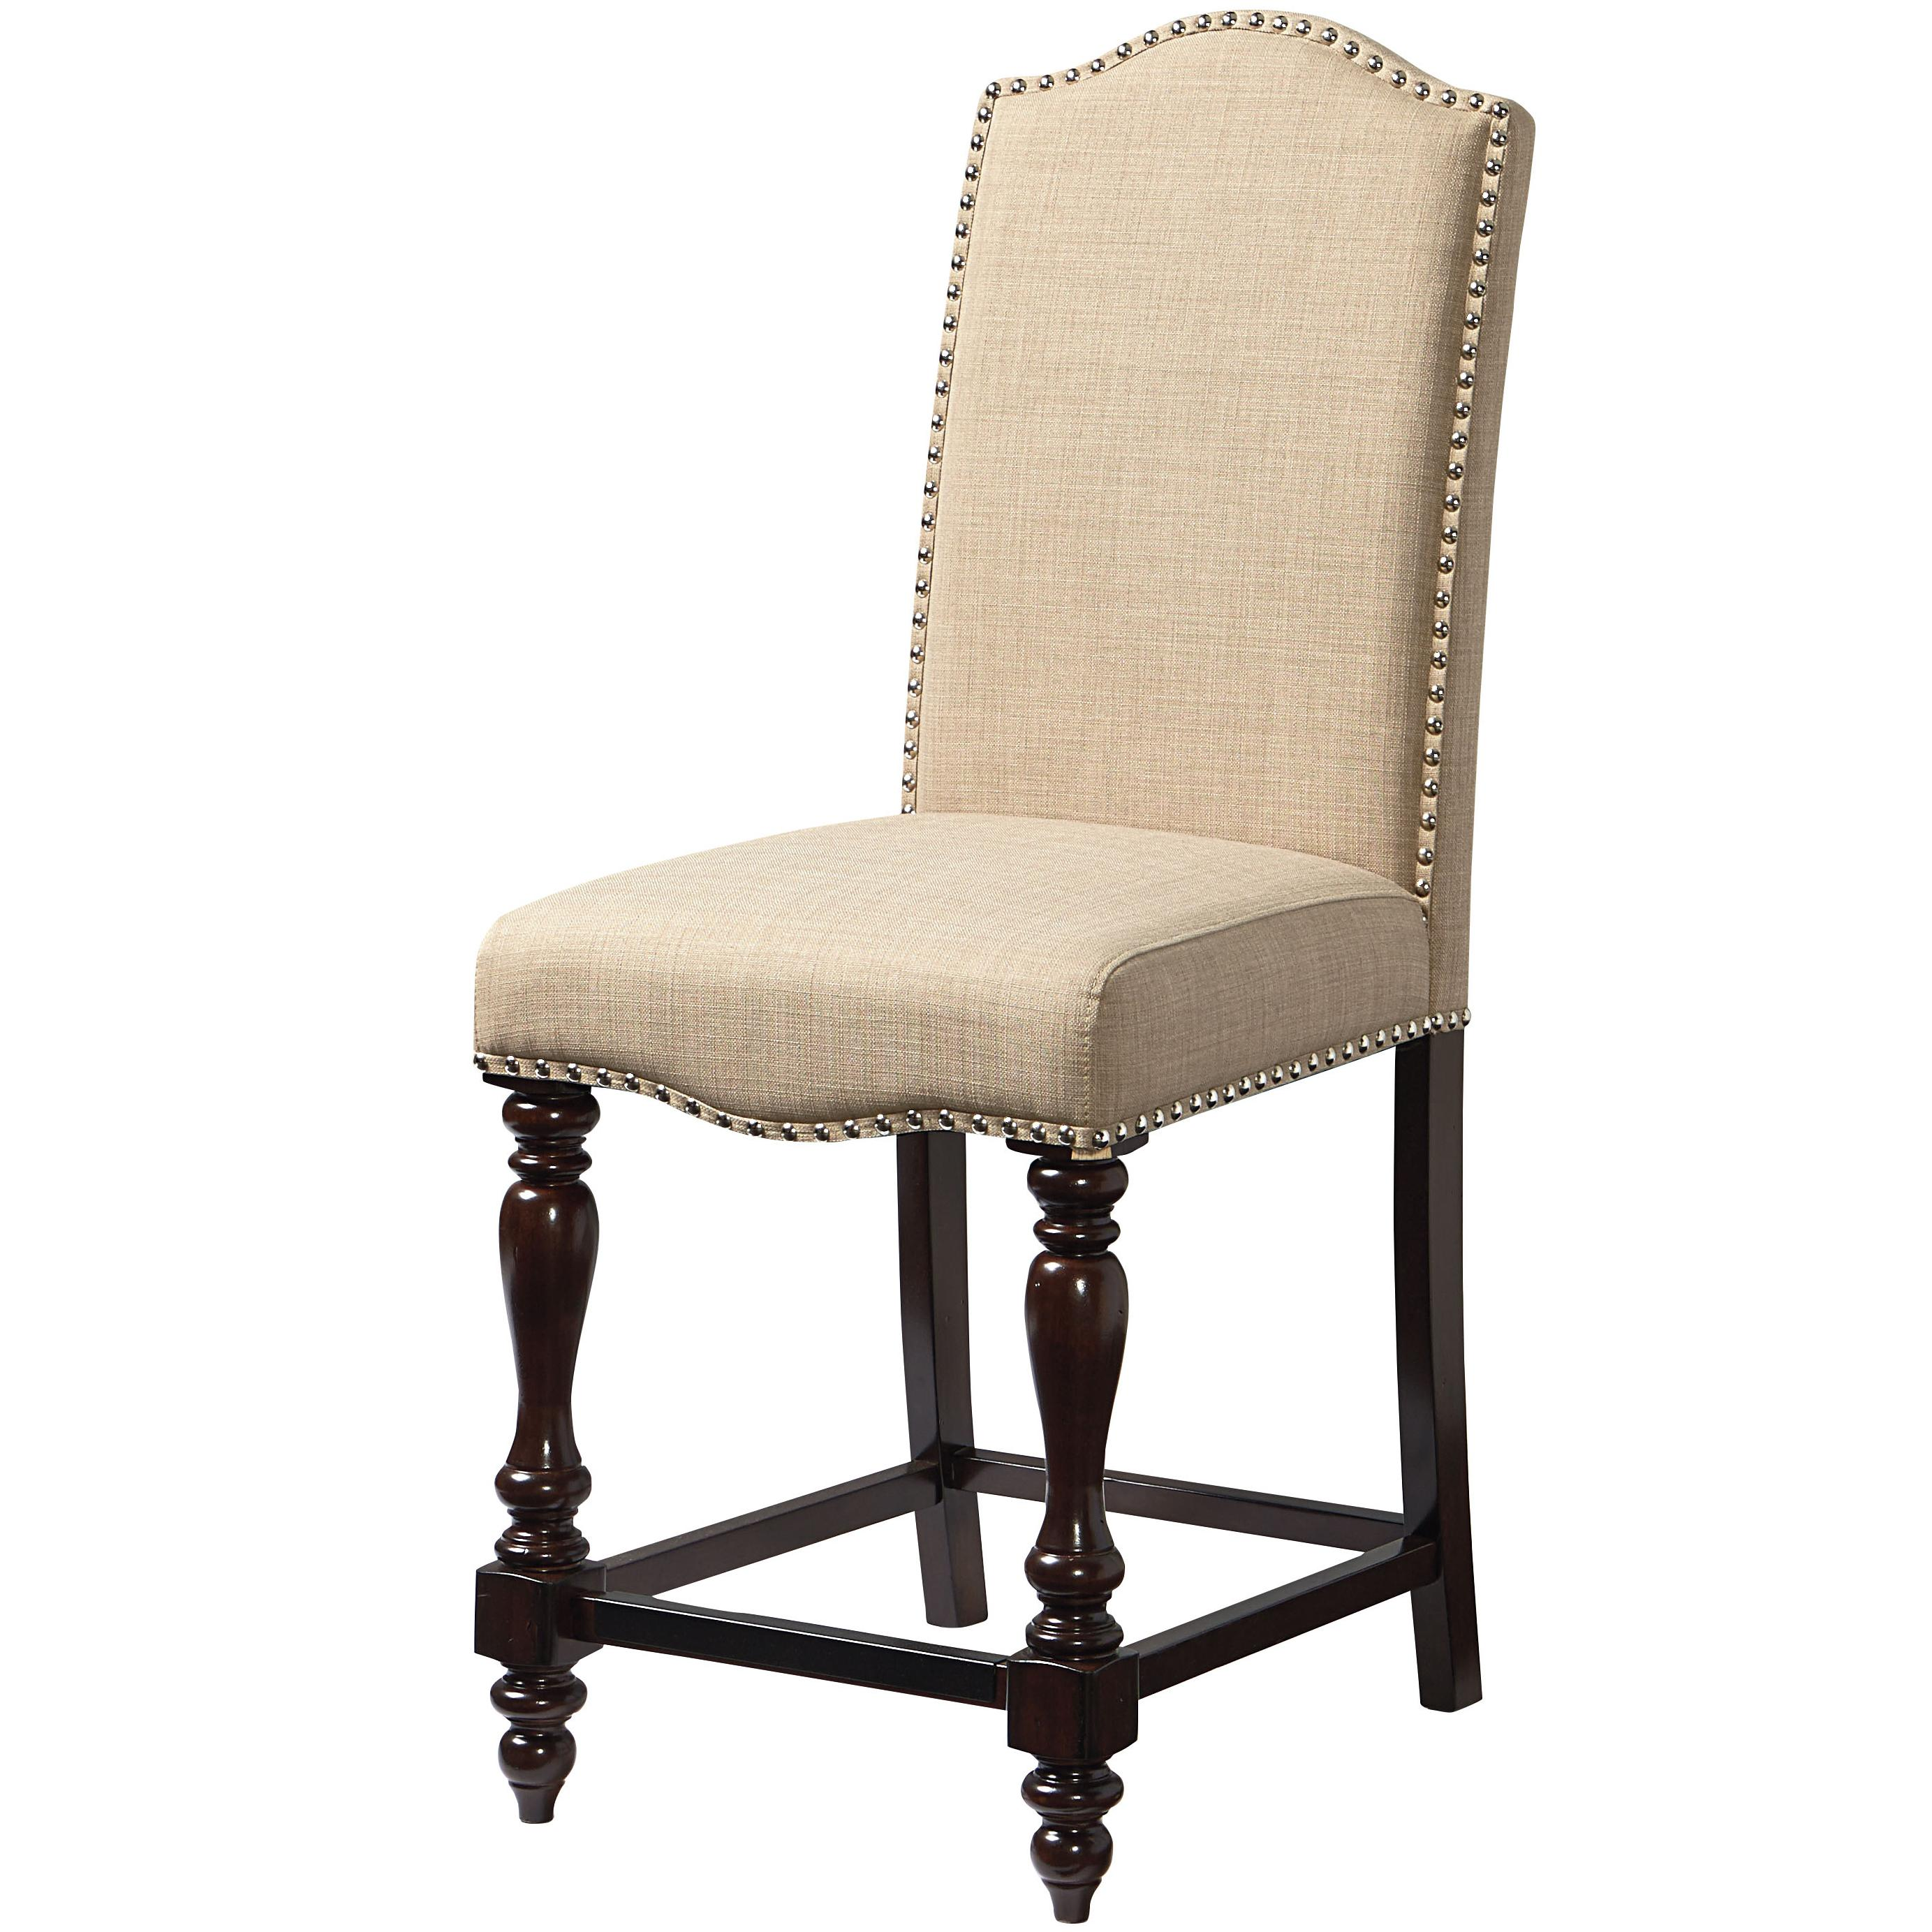 Standard Dining Chair Height Standard Furniture Mcgregor 17737 Upholstered Counter